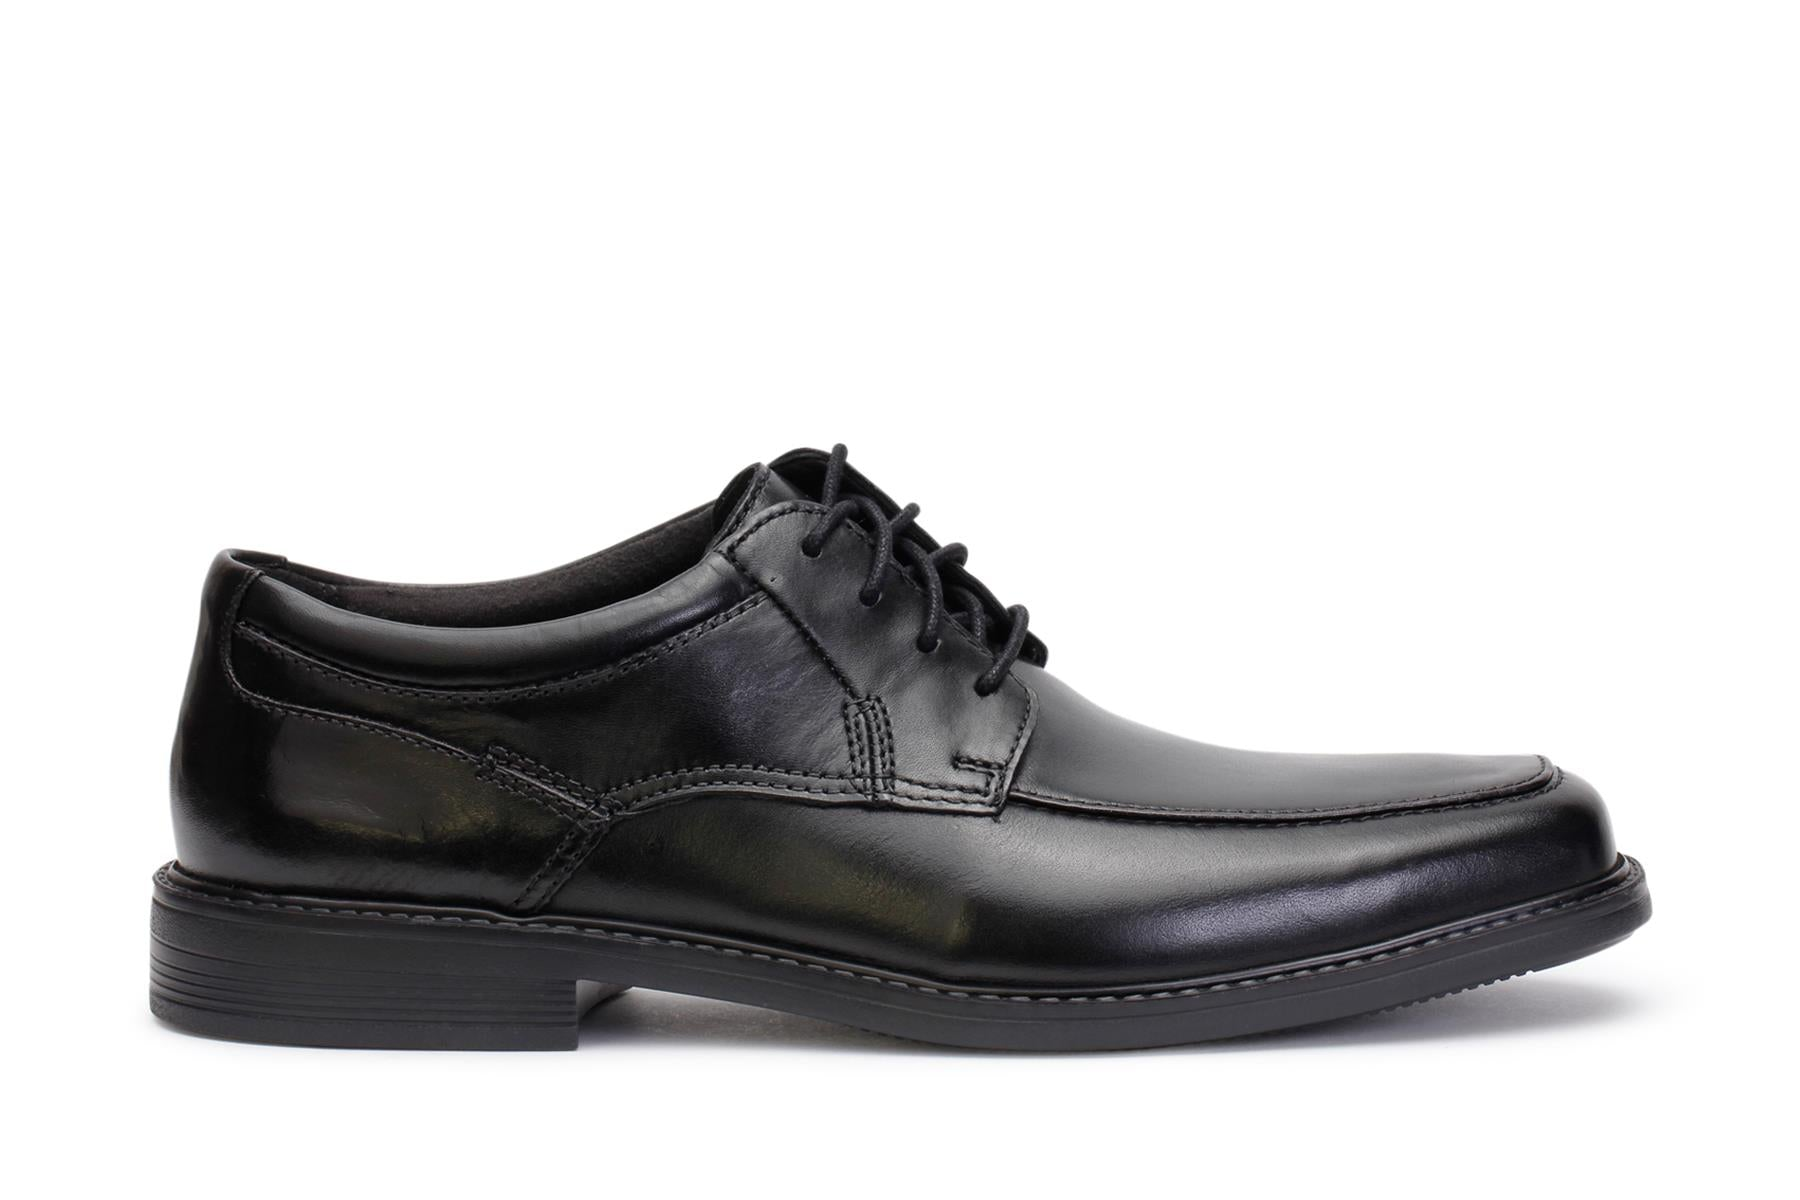 bostonian-mens-lace-up-dress-shoes-ipswich-apron-black-leather-26130507-main